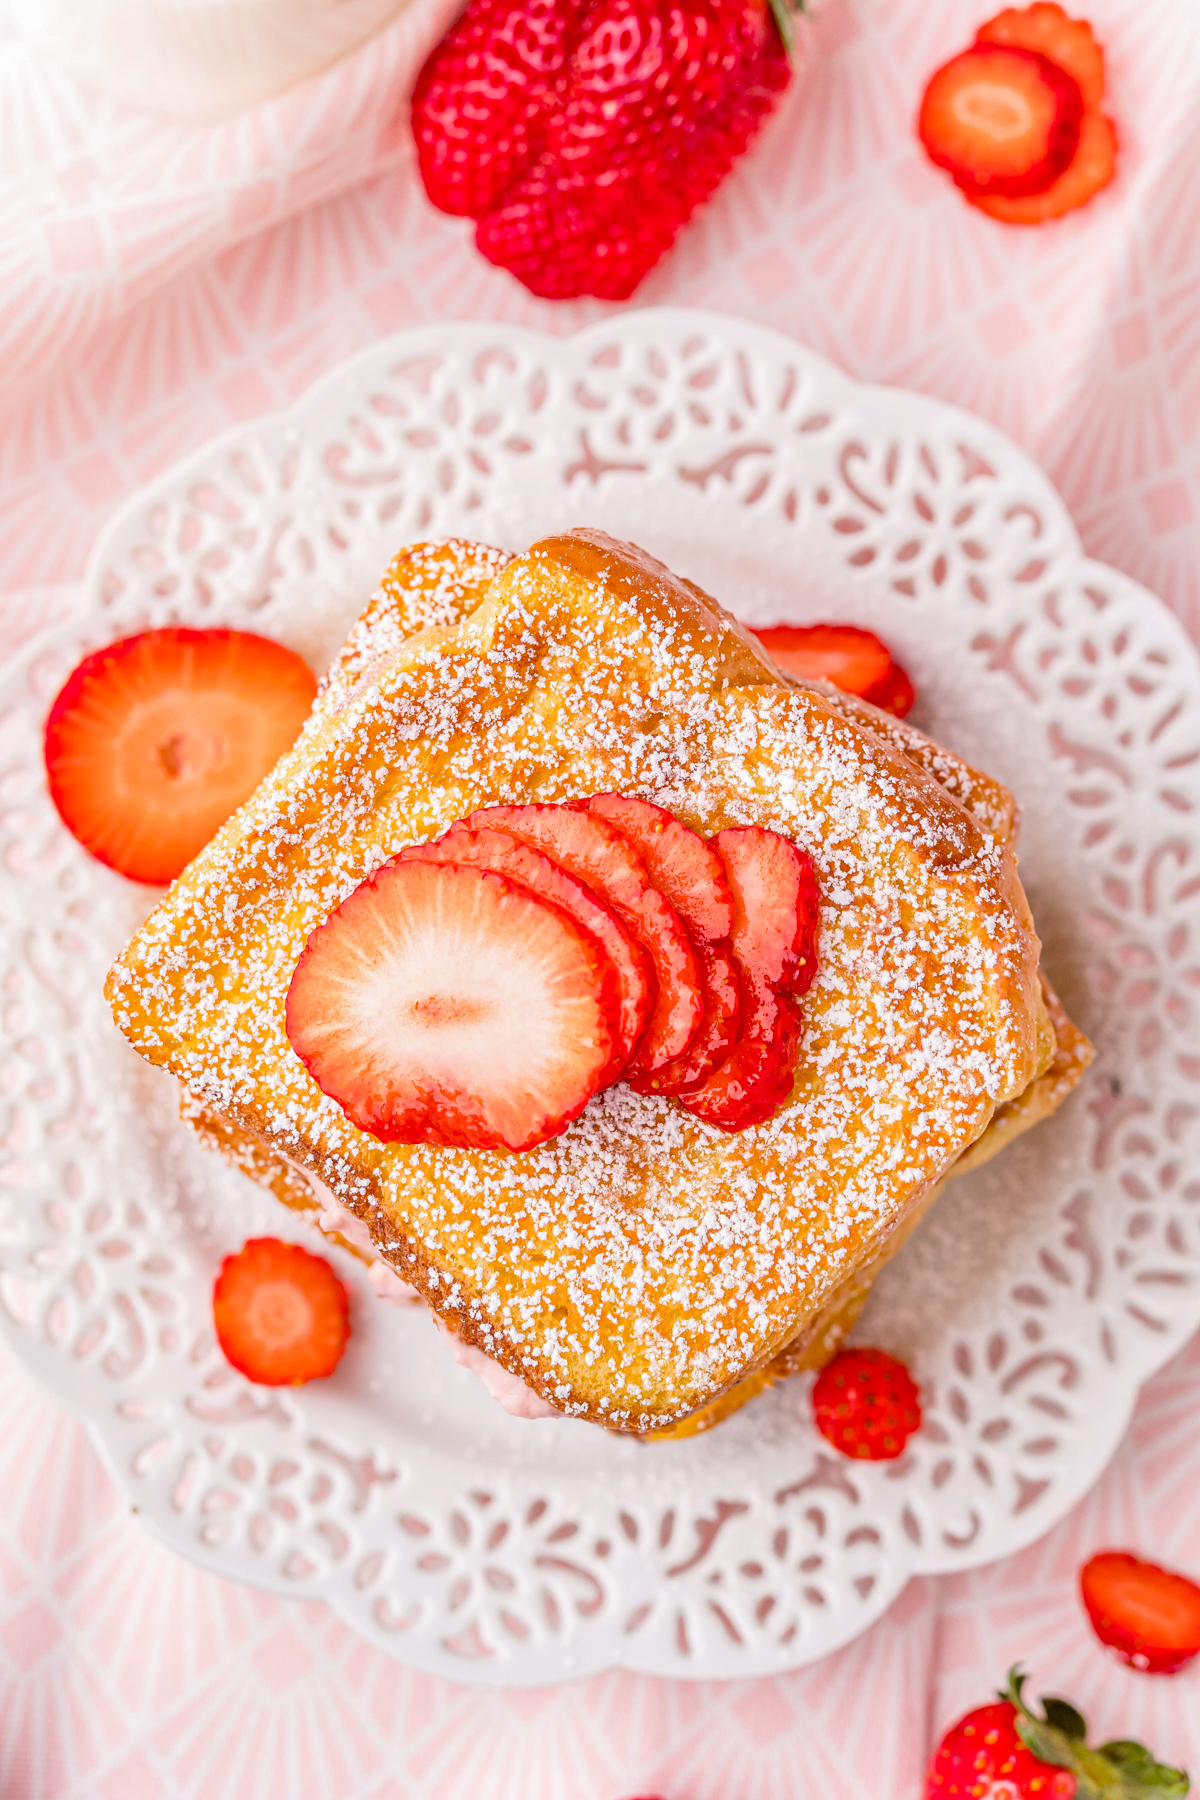 Overhead of French Toast on plate garnished with strawberries